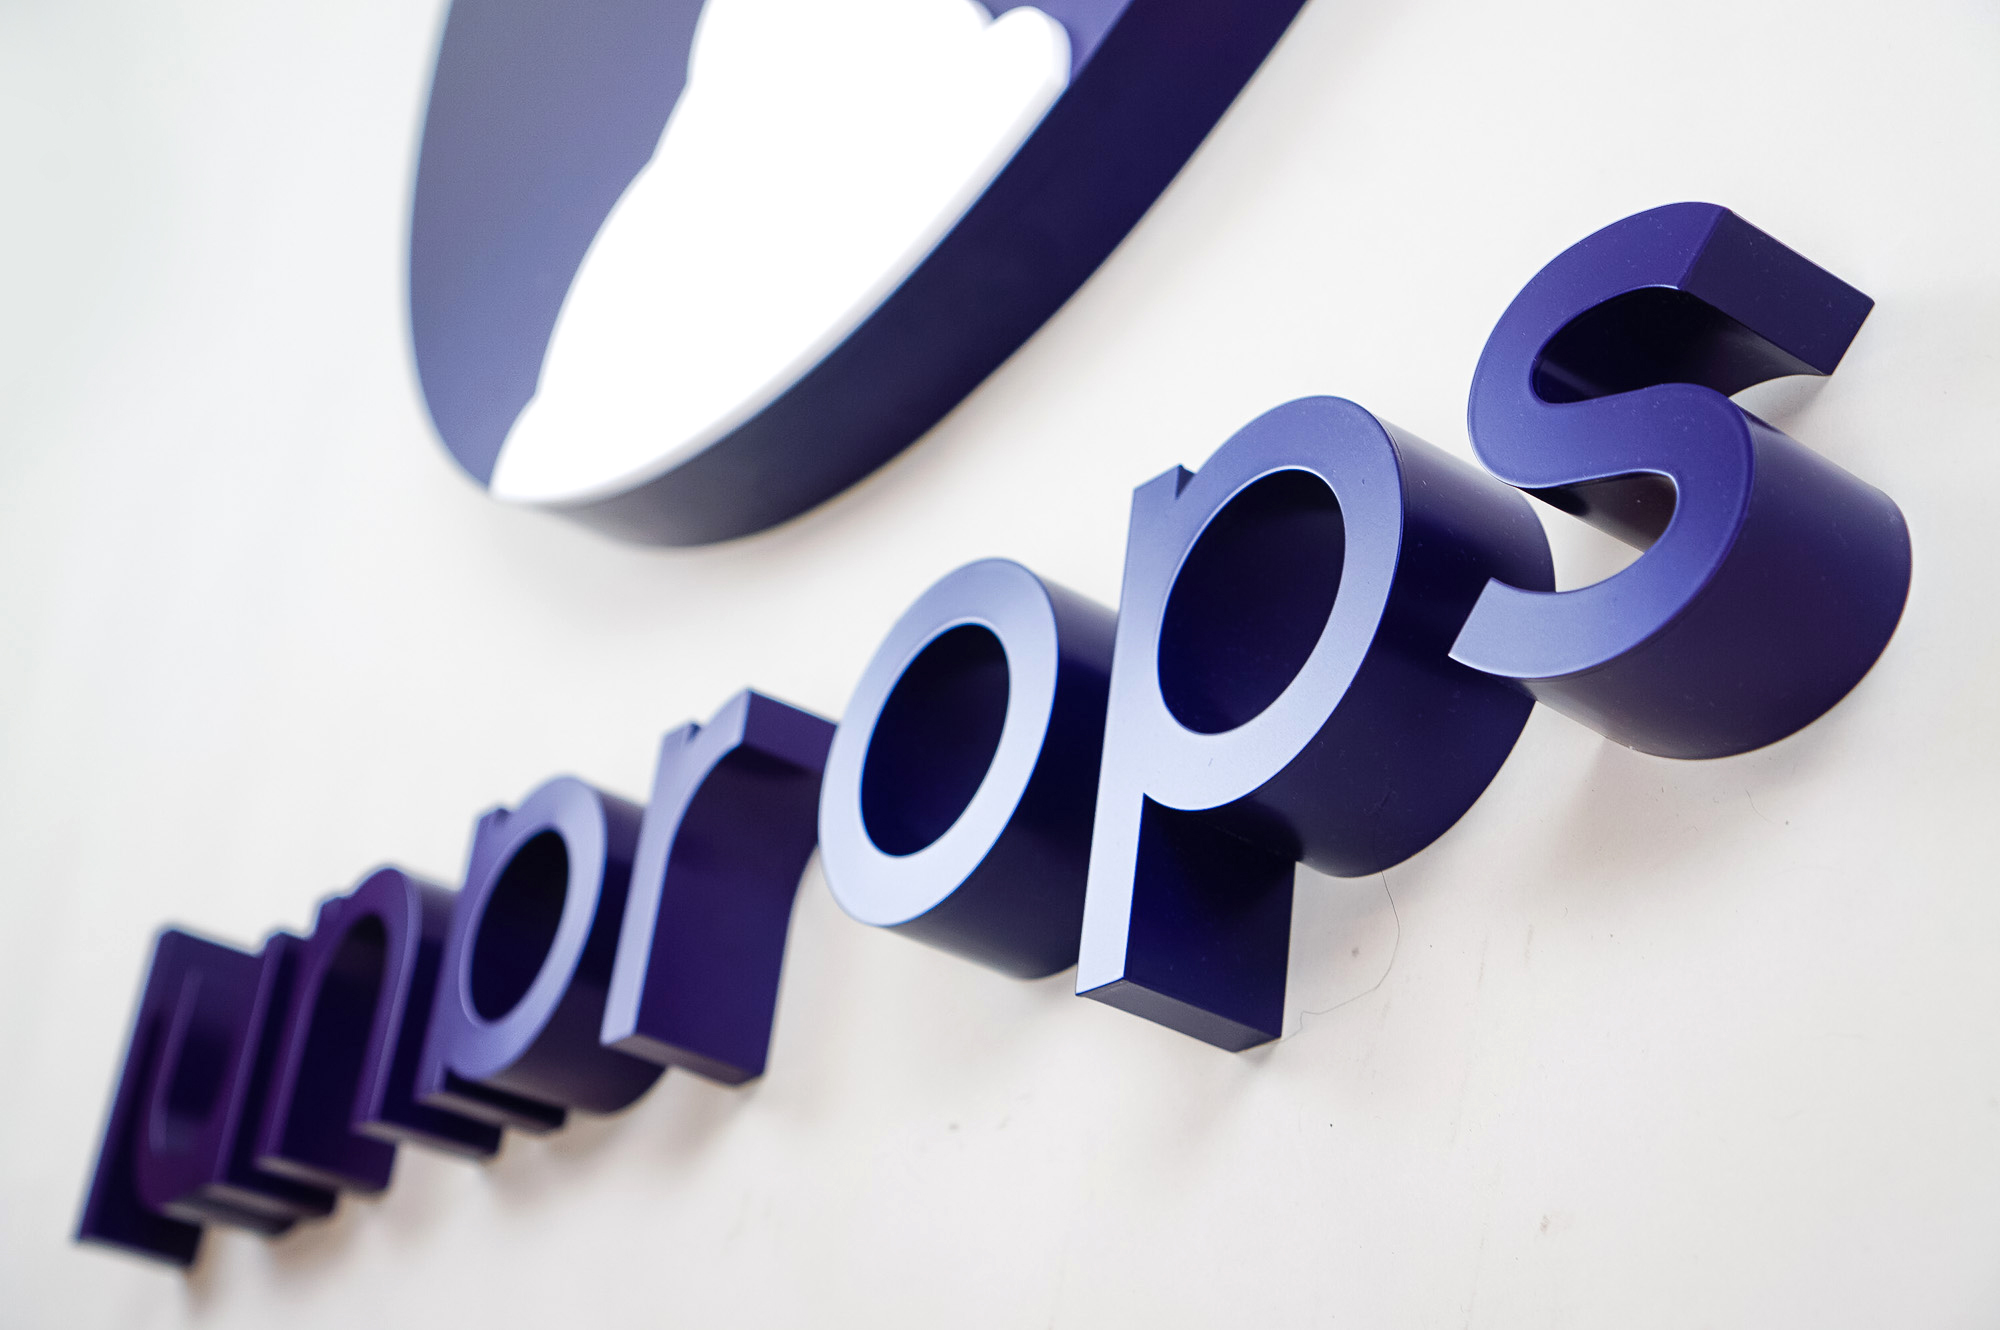 Dimensional purple letters and white rocket ship for Lunar Ops, Inc. in New York.